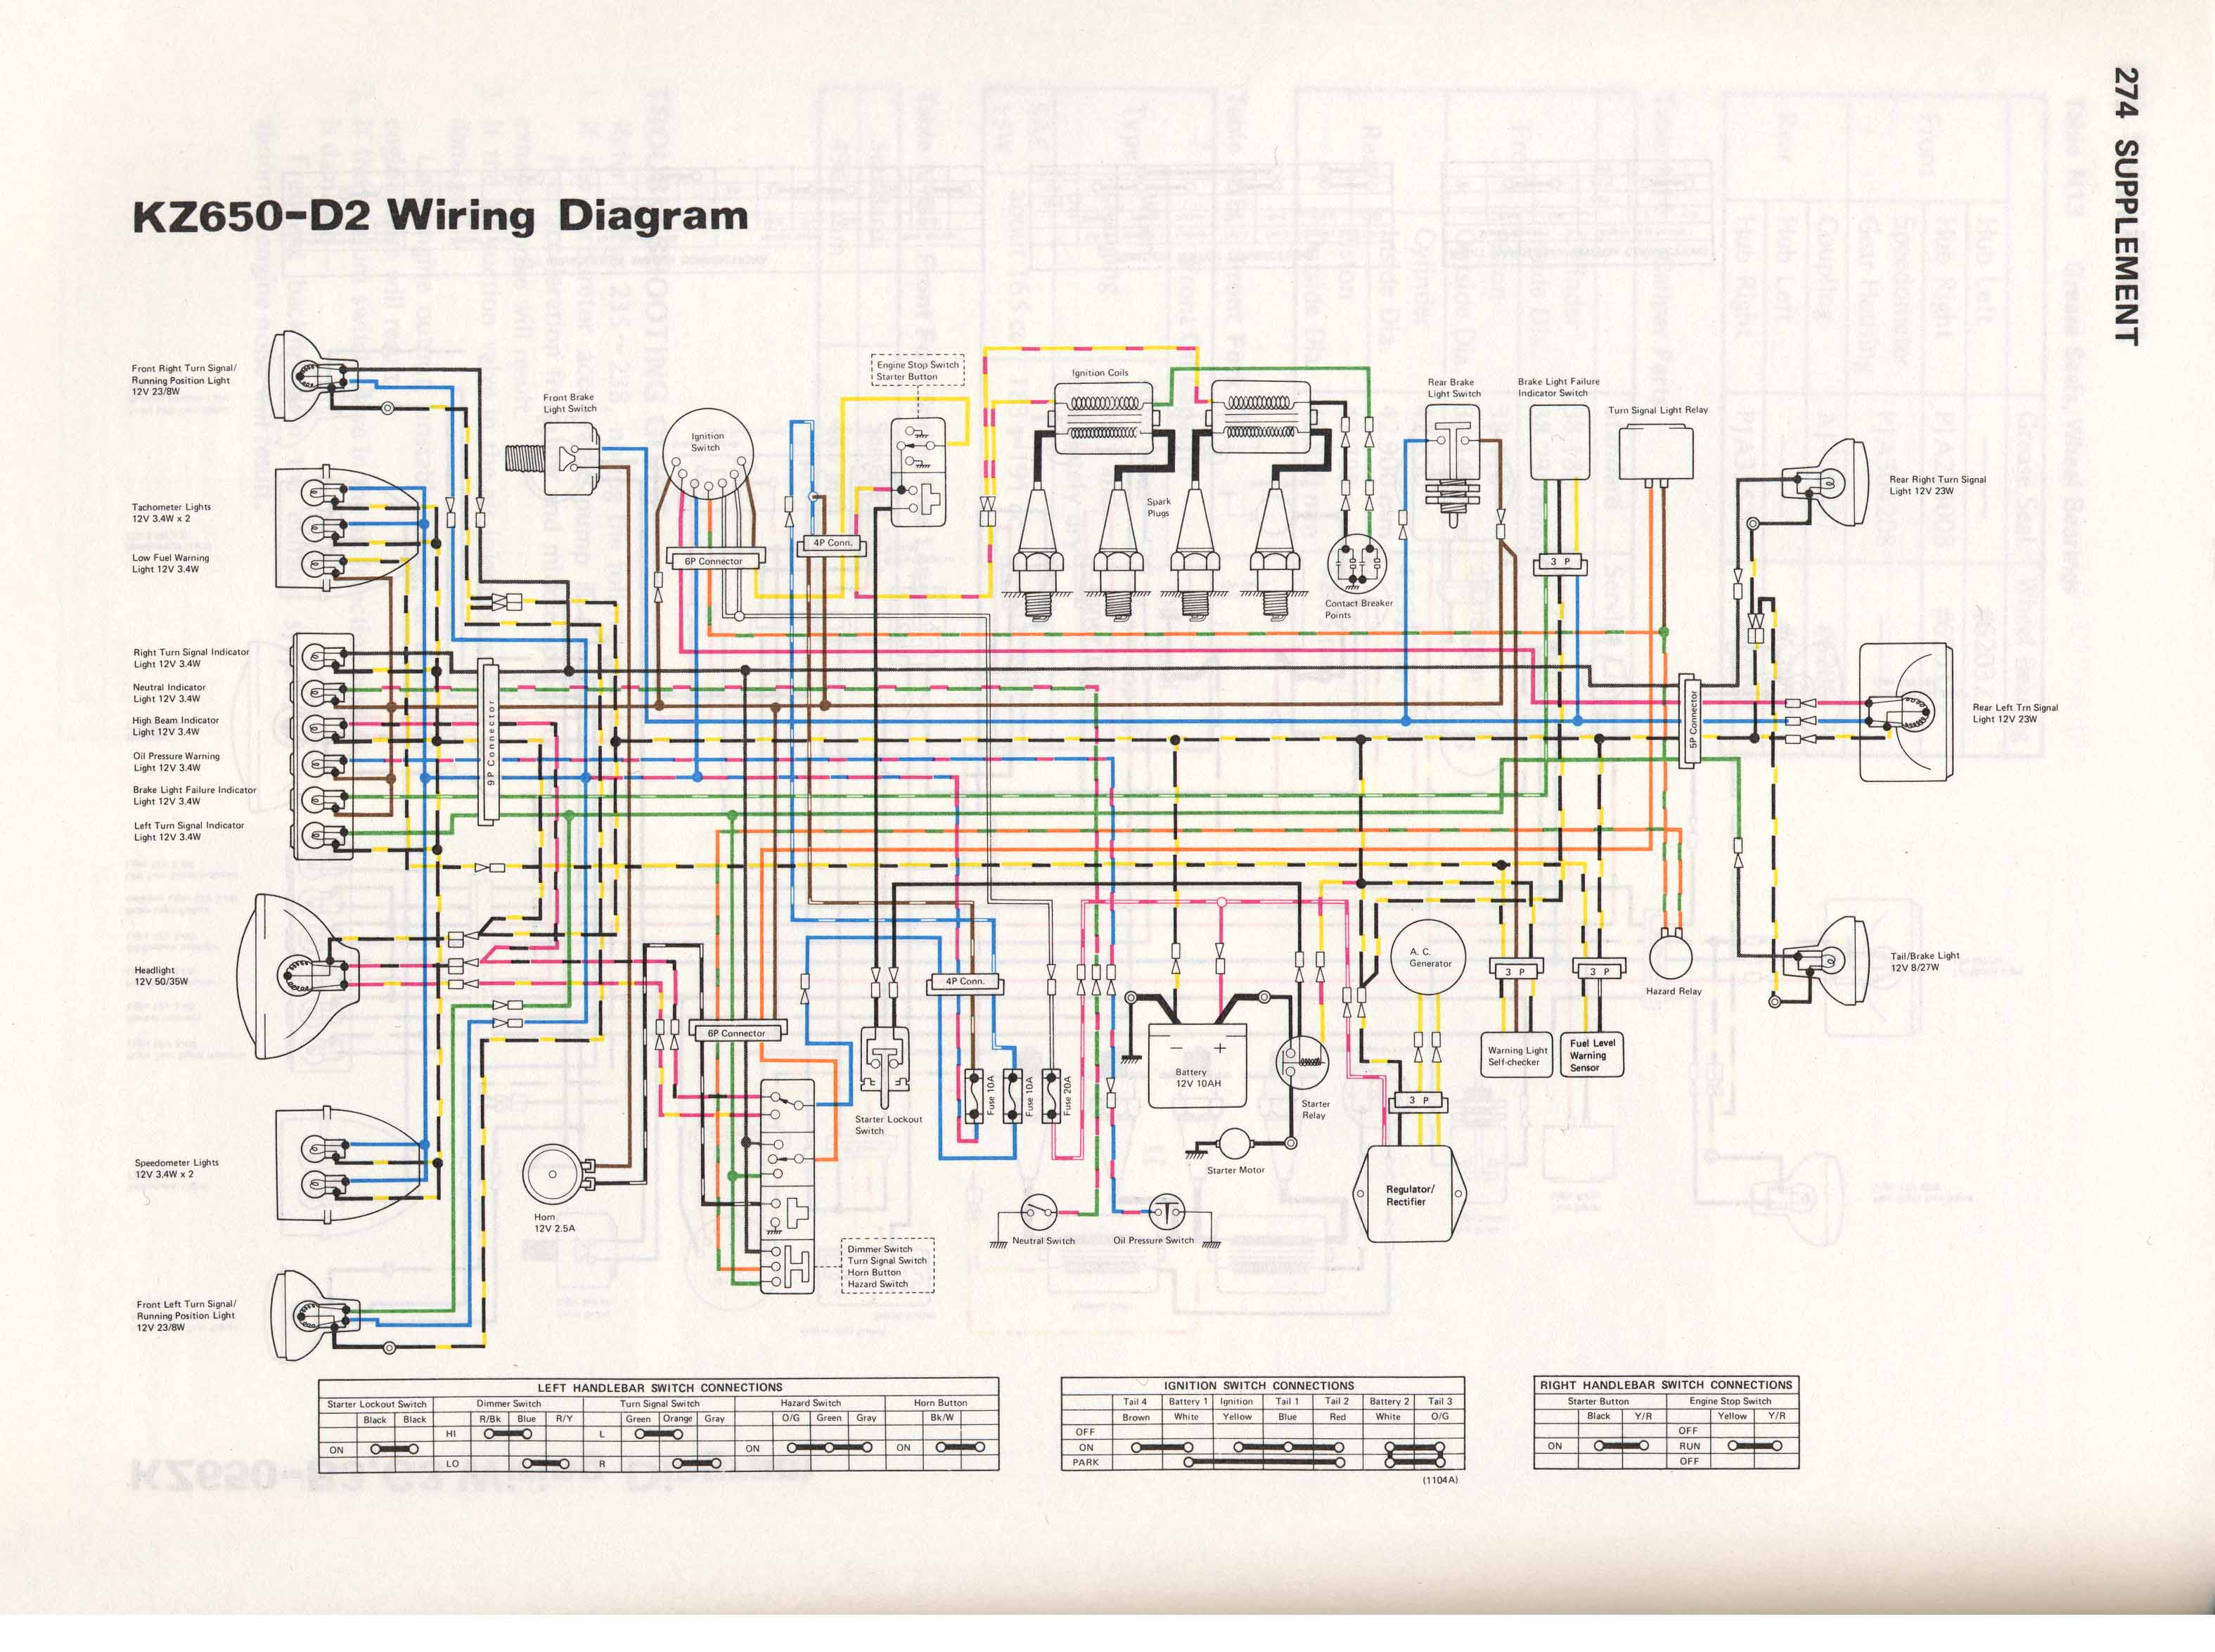 KZ650 D2 kz650 info wiring diagrams 1978 kz650 wiring harness at crackthecode.co